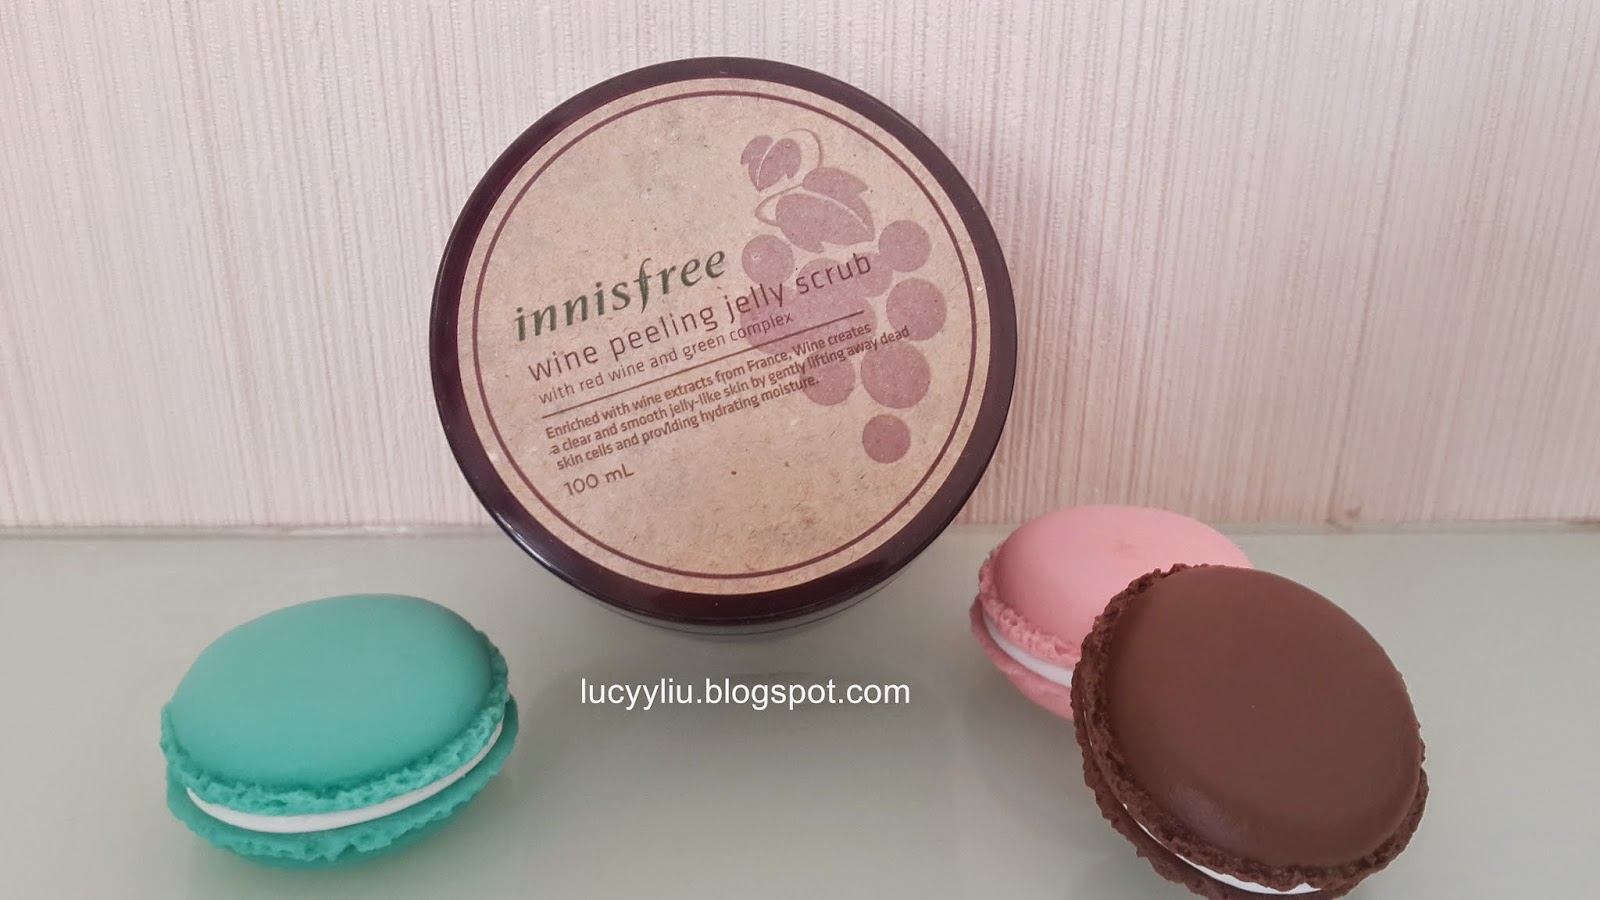 Innisfree Wine Peeling Jelly Scrub review